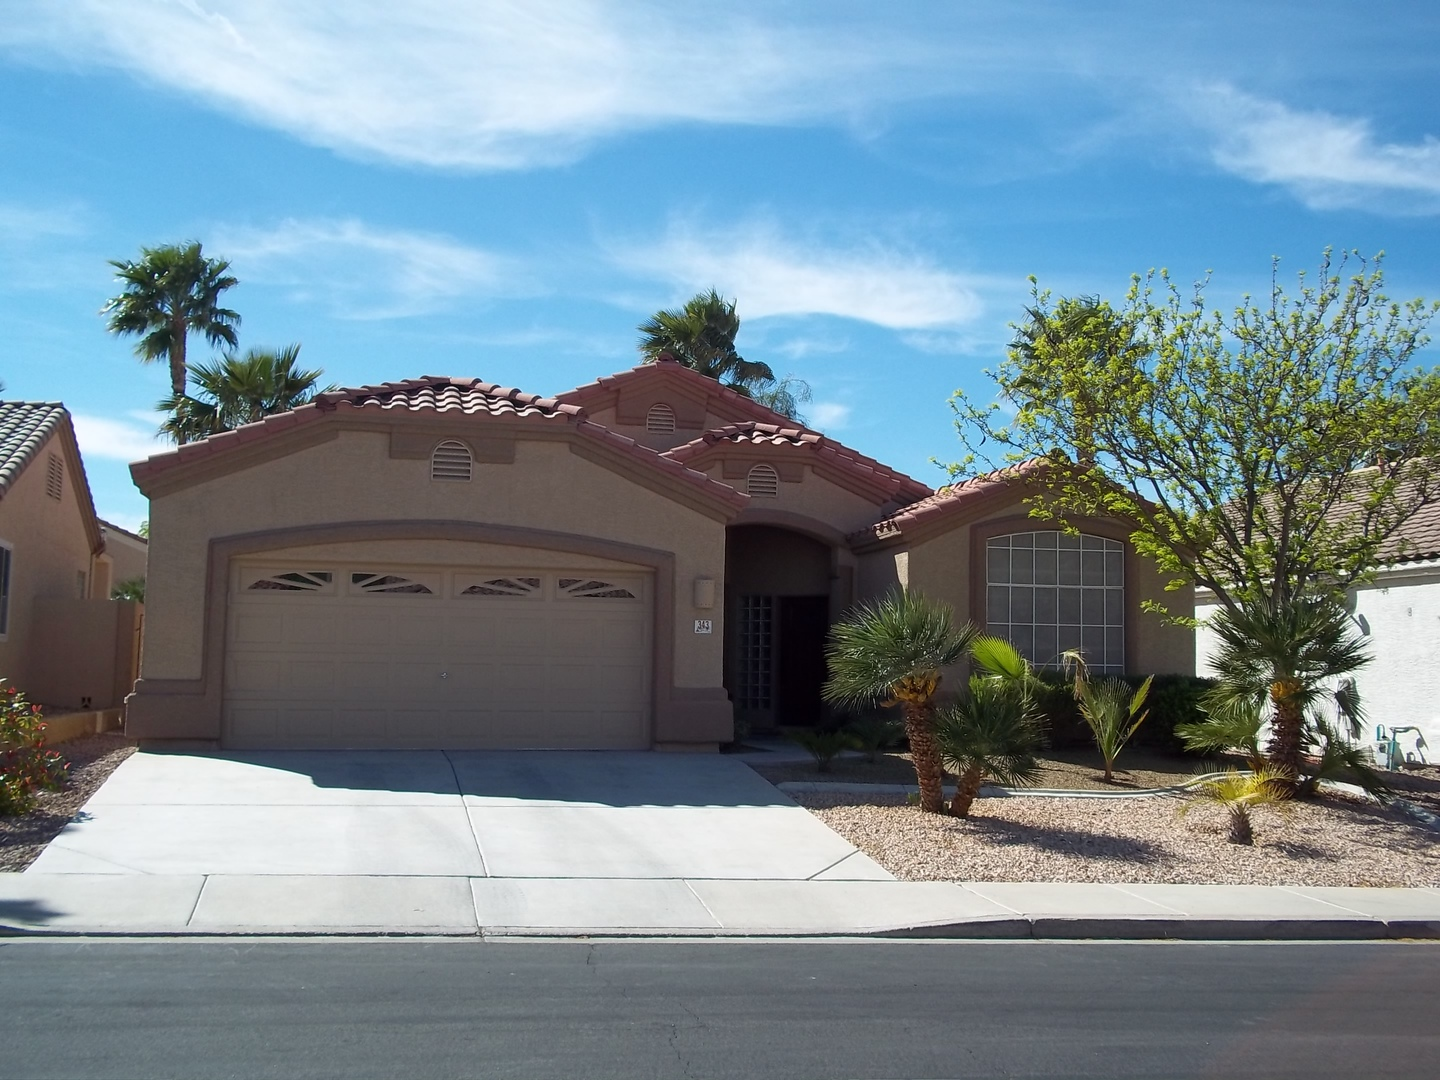 Apartments and houses for rent near me in green valley - 4 bedroom houses for rent henderson nv ...